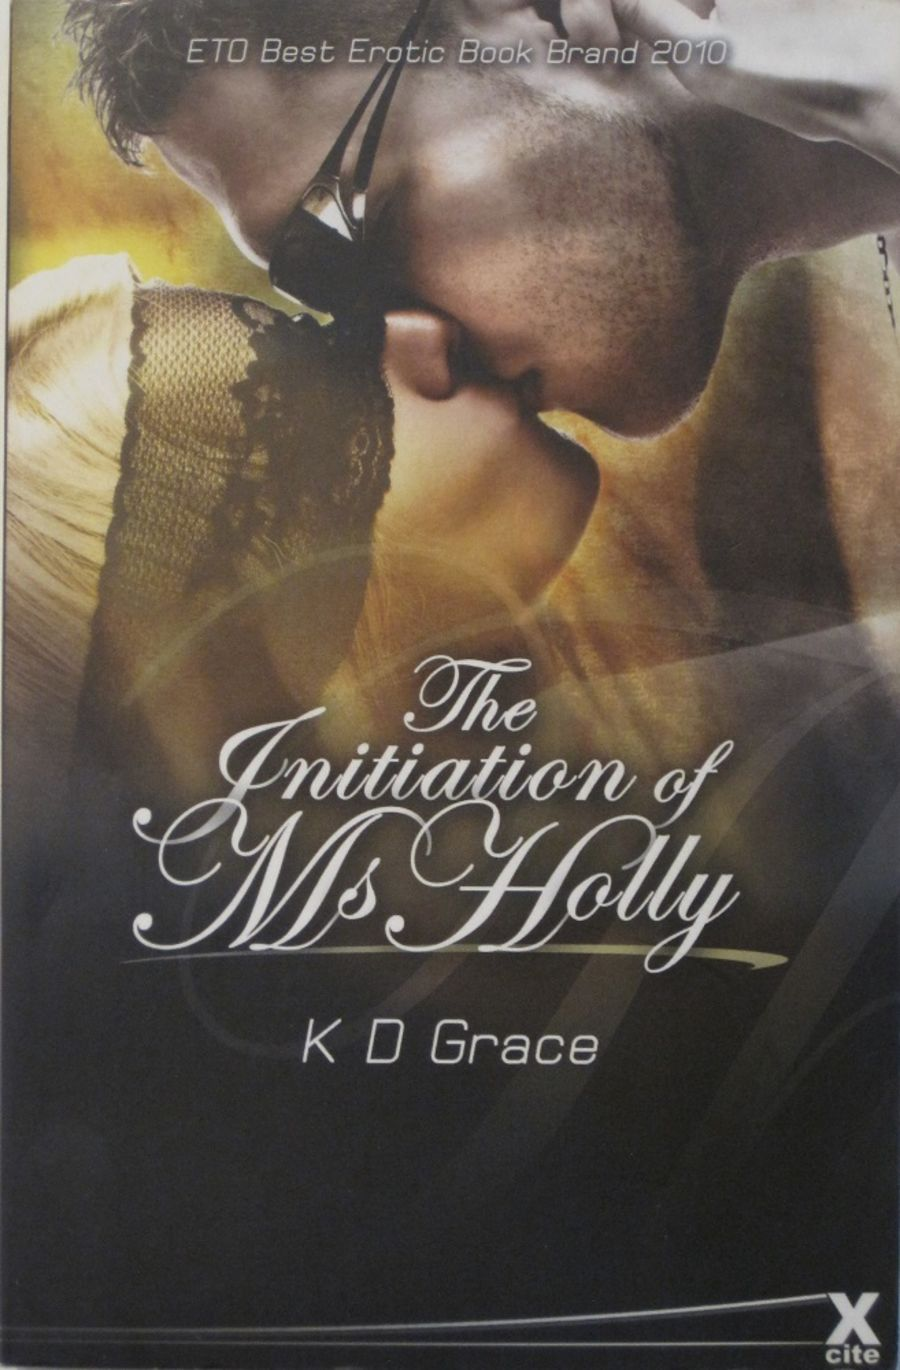 THE INITIATION OF MS. HOLLY.  2010 EROTIC FICTION PAPERBACK BOOK.